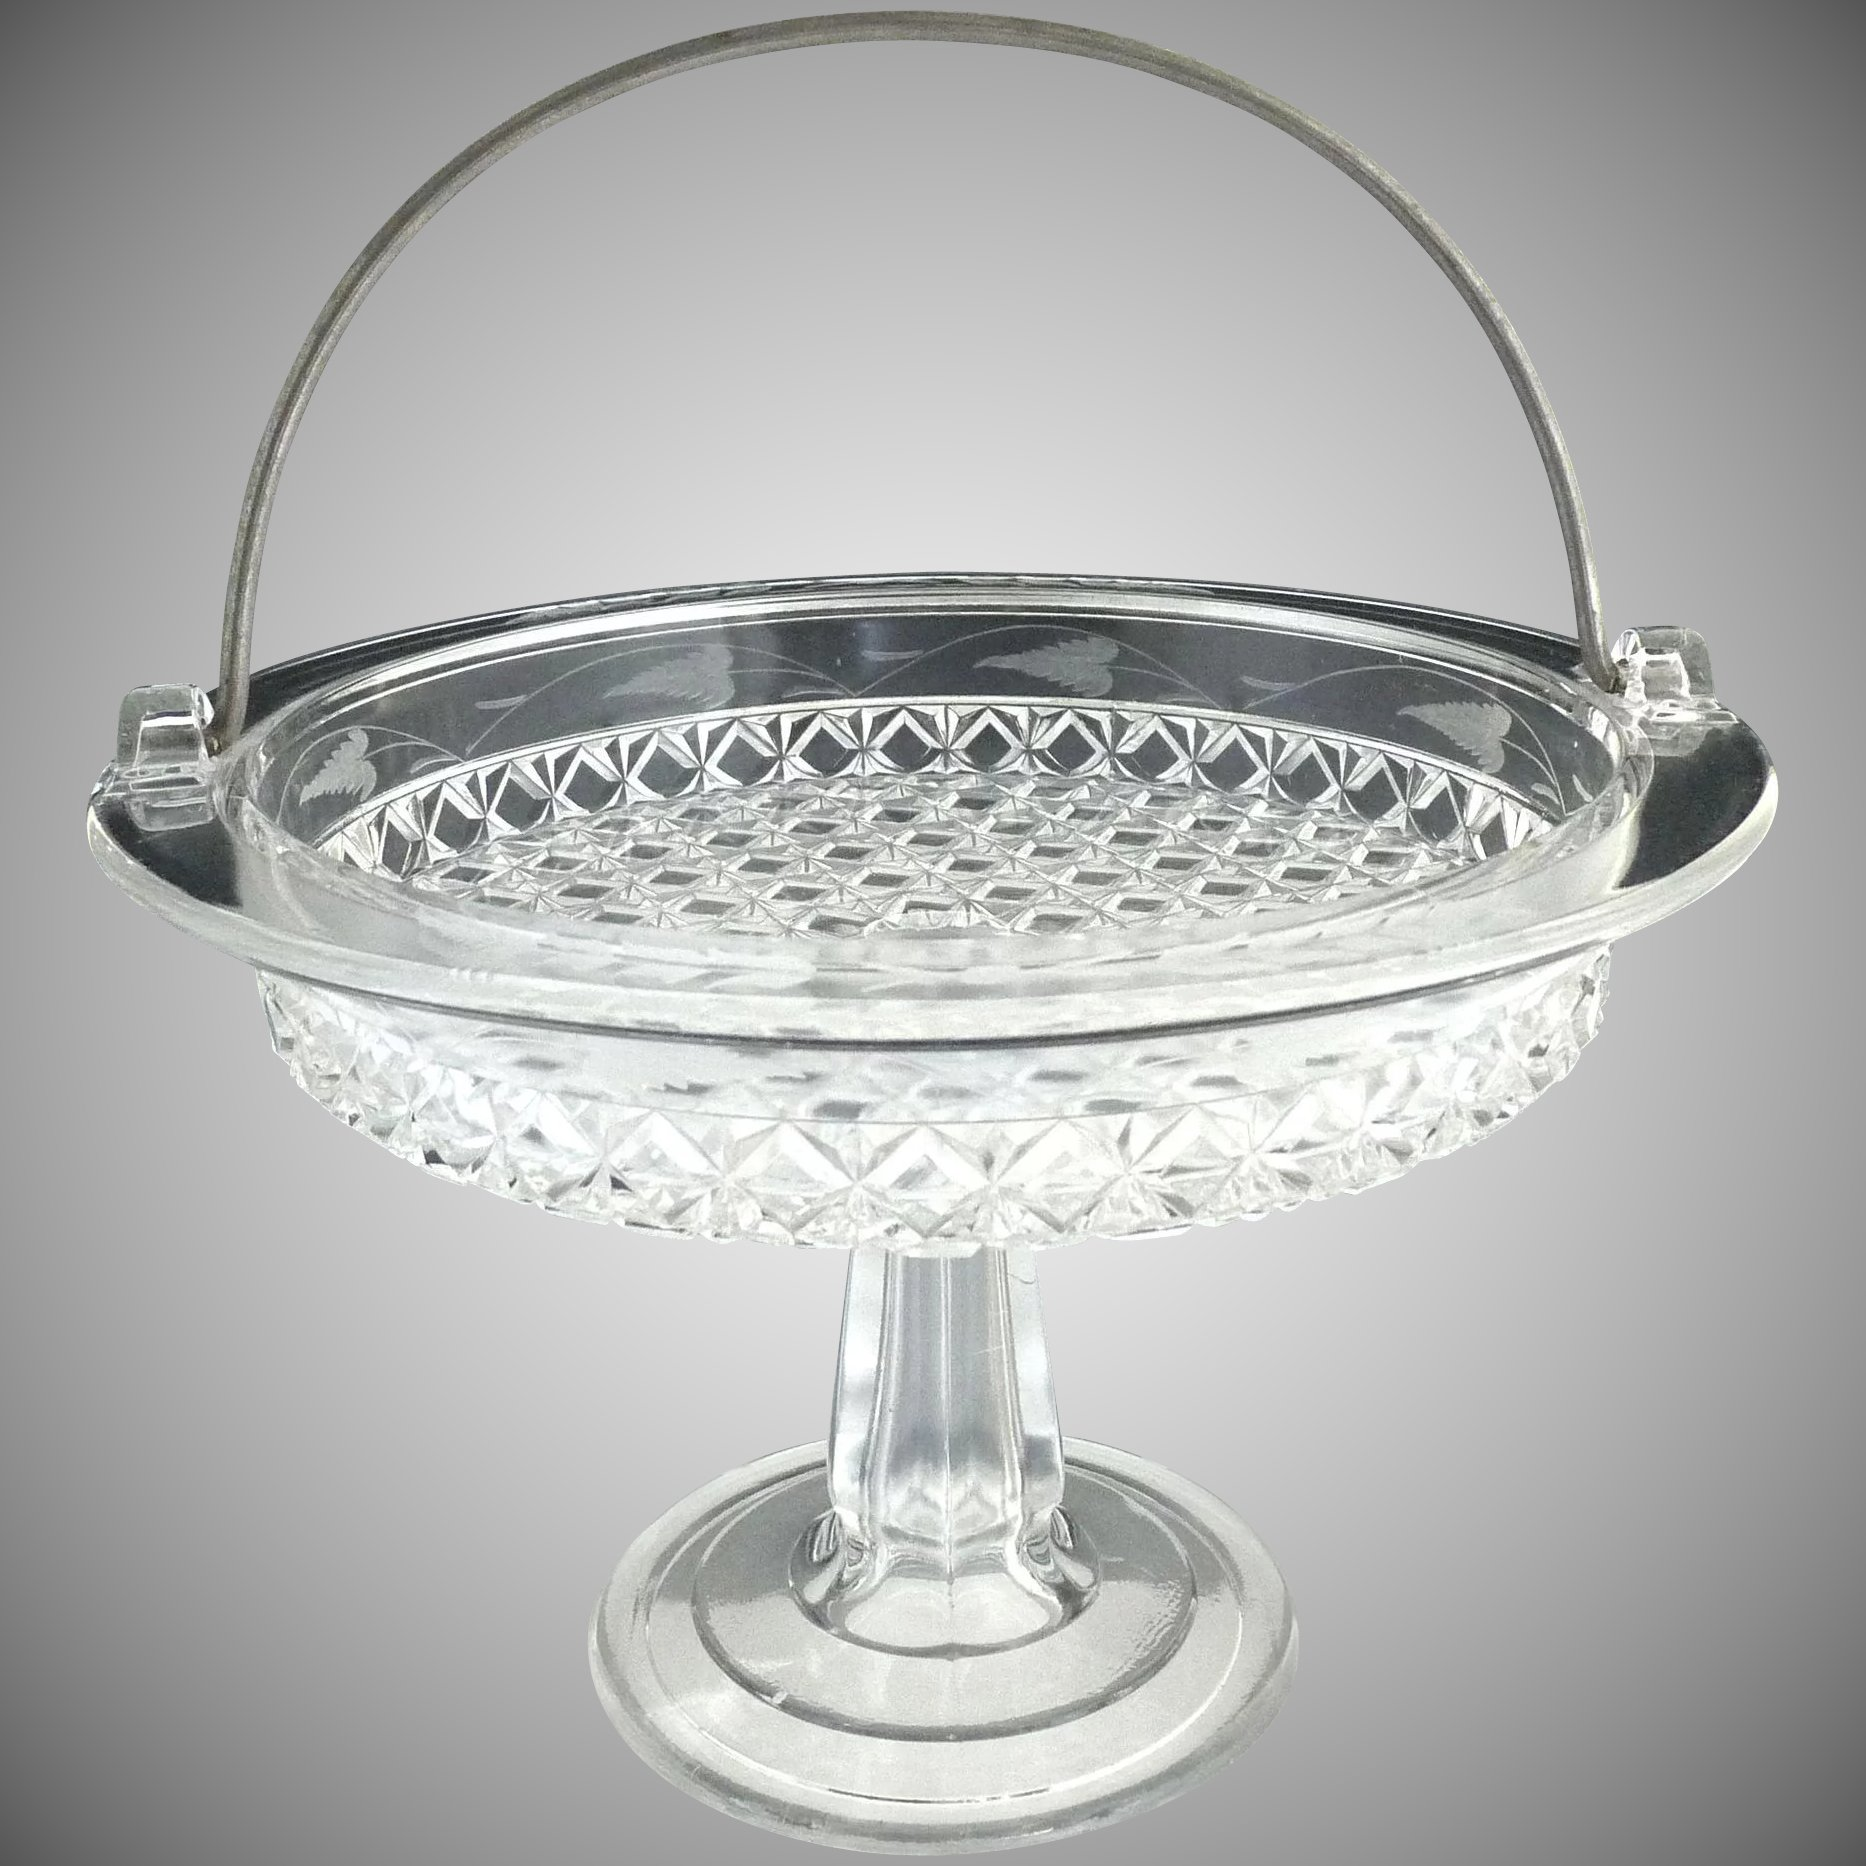 EAPG etched cake stand basket Mascotte aka Dominion Ripley c 1884